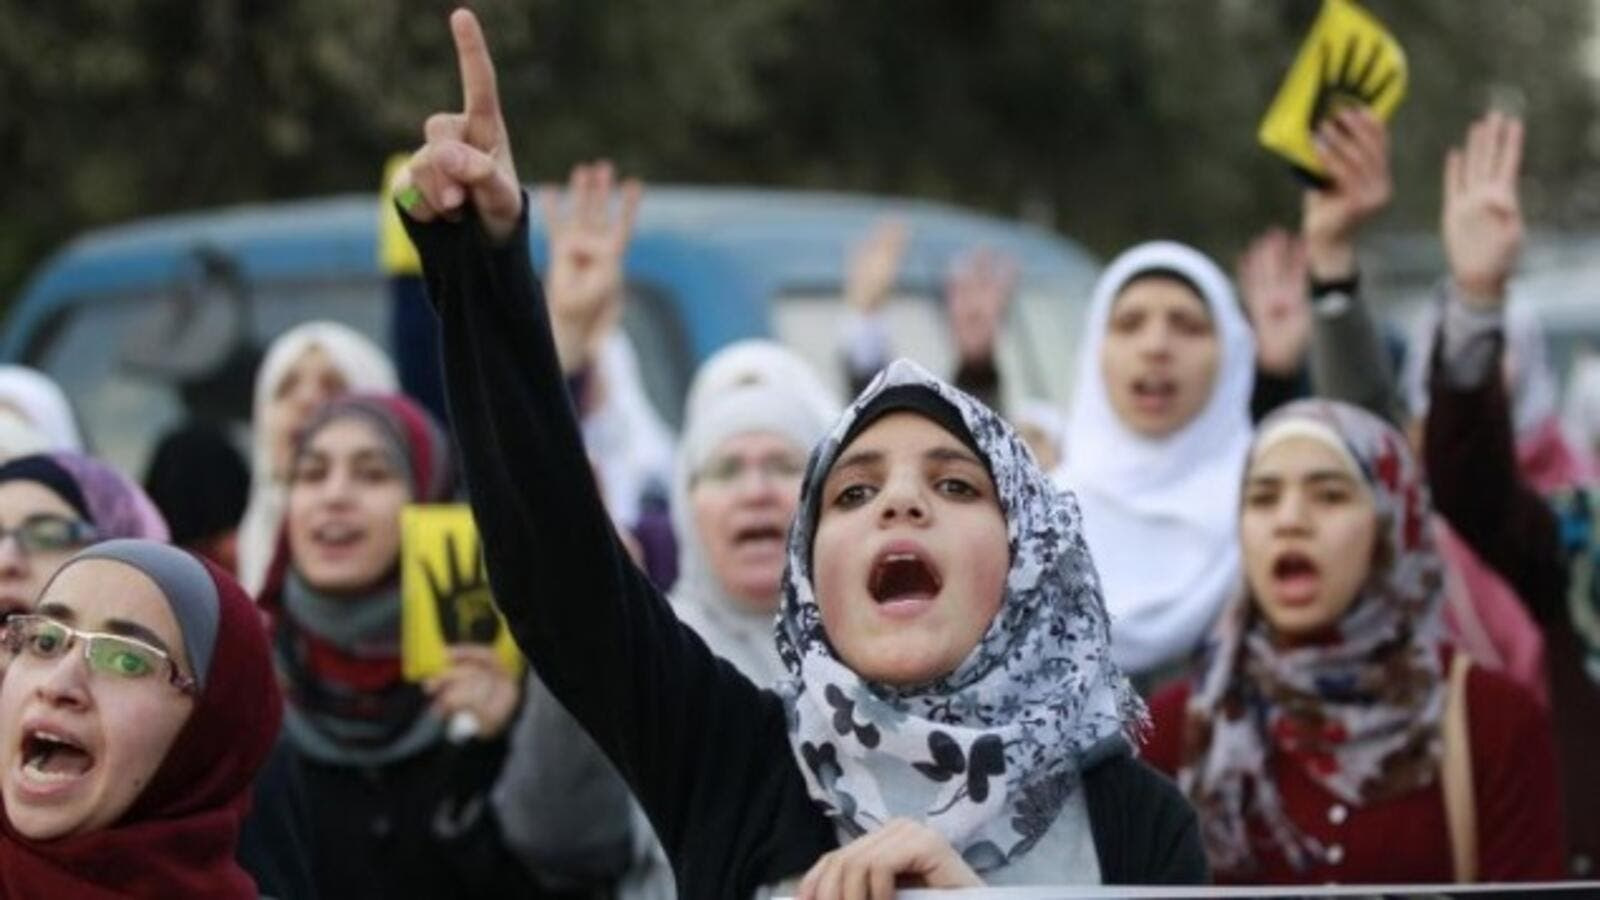 Jordanian women shout slogans as they protest in Amman on January 25, 2014. (AFP/ Khalil Mazraawi)